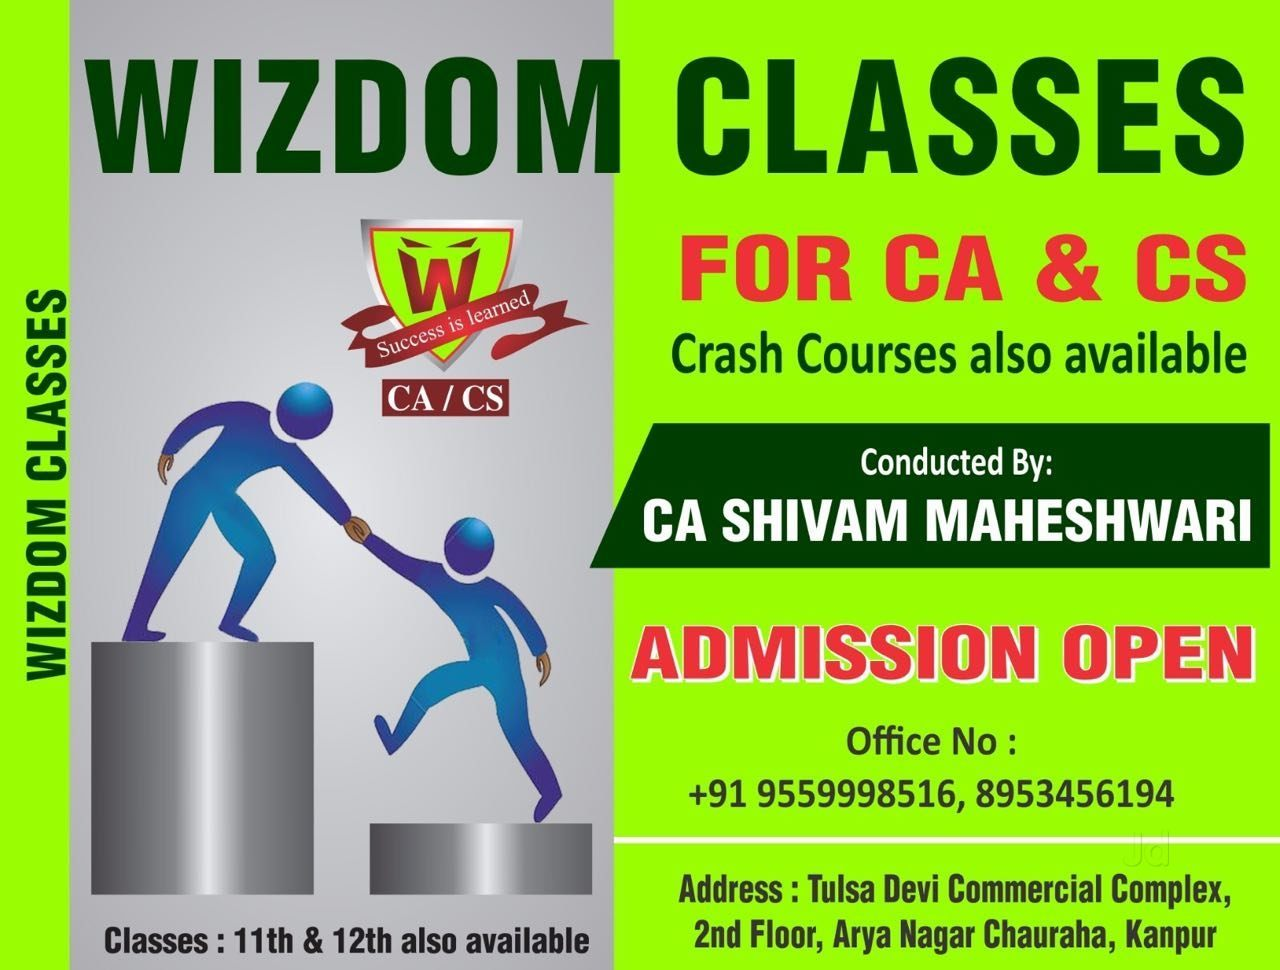 Top 20 Coaching Classes For Class 12th in Kanpur - Best Tuition